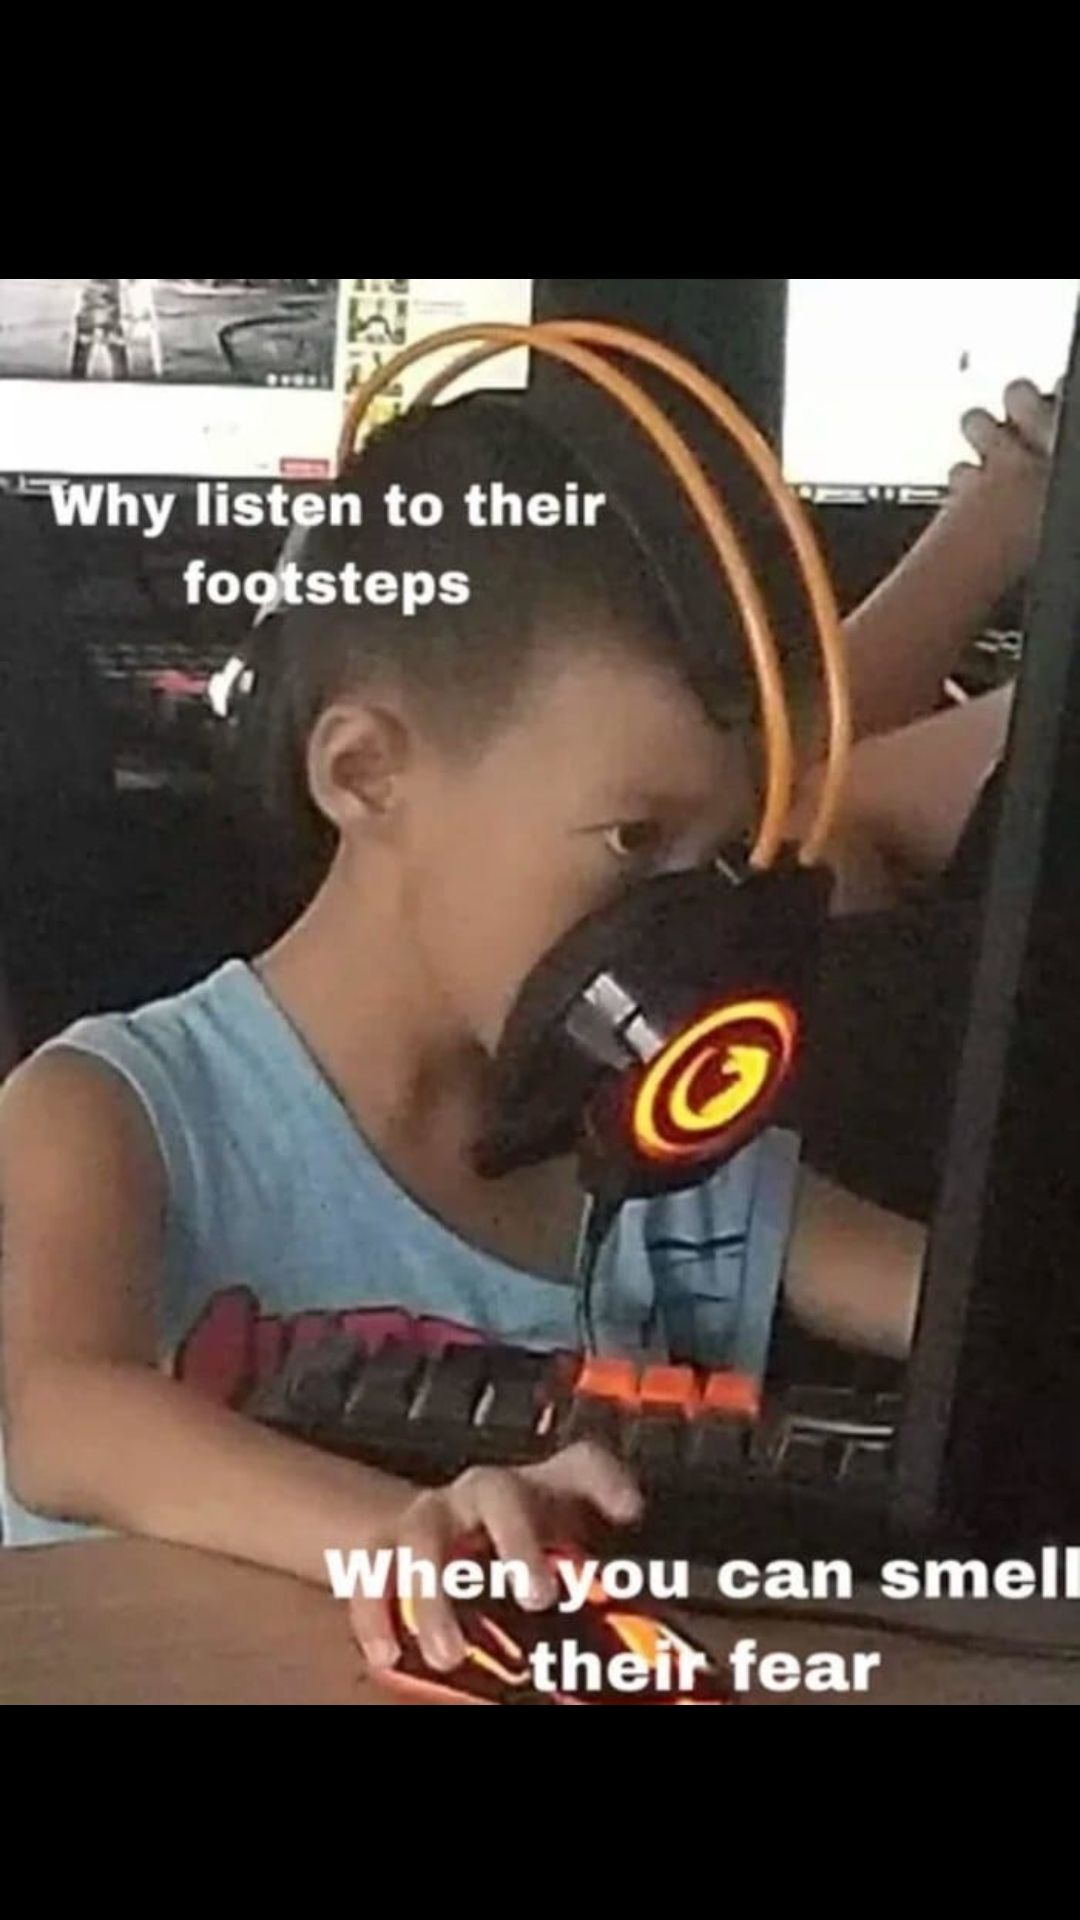 Why listen to their footsteps?